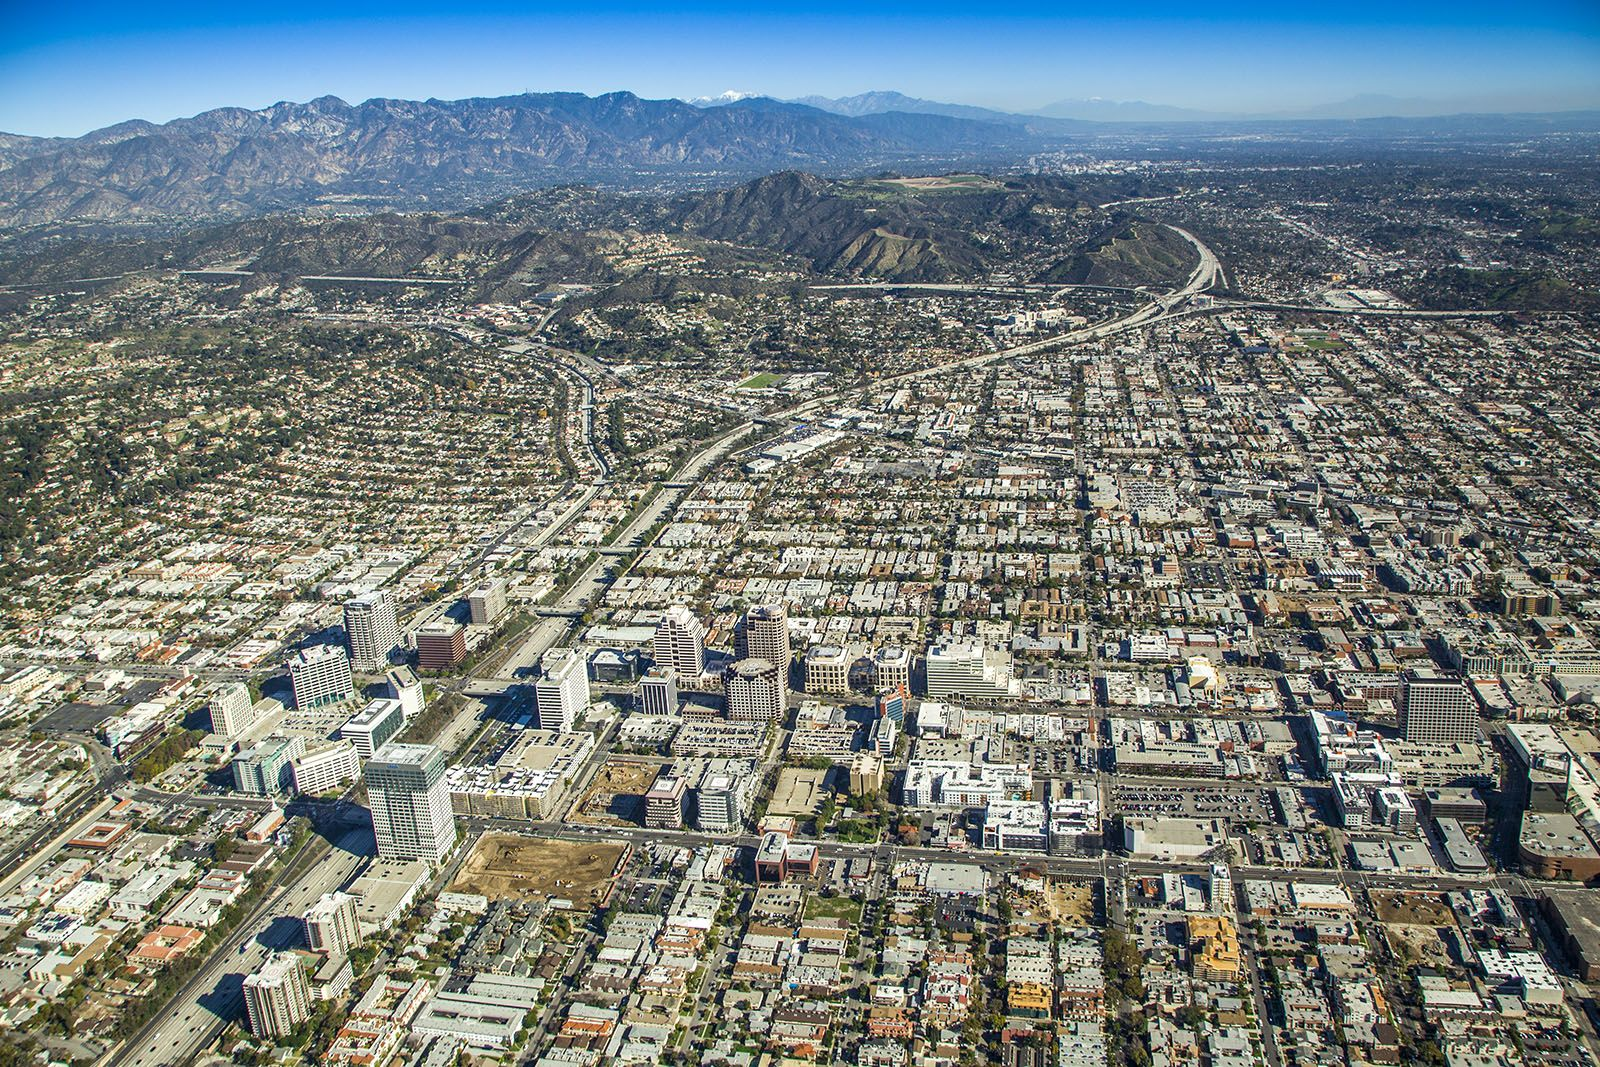 Glendale Ca Glendale Aerial View Usa Cities